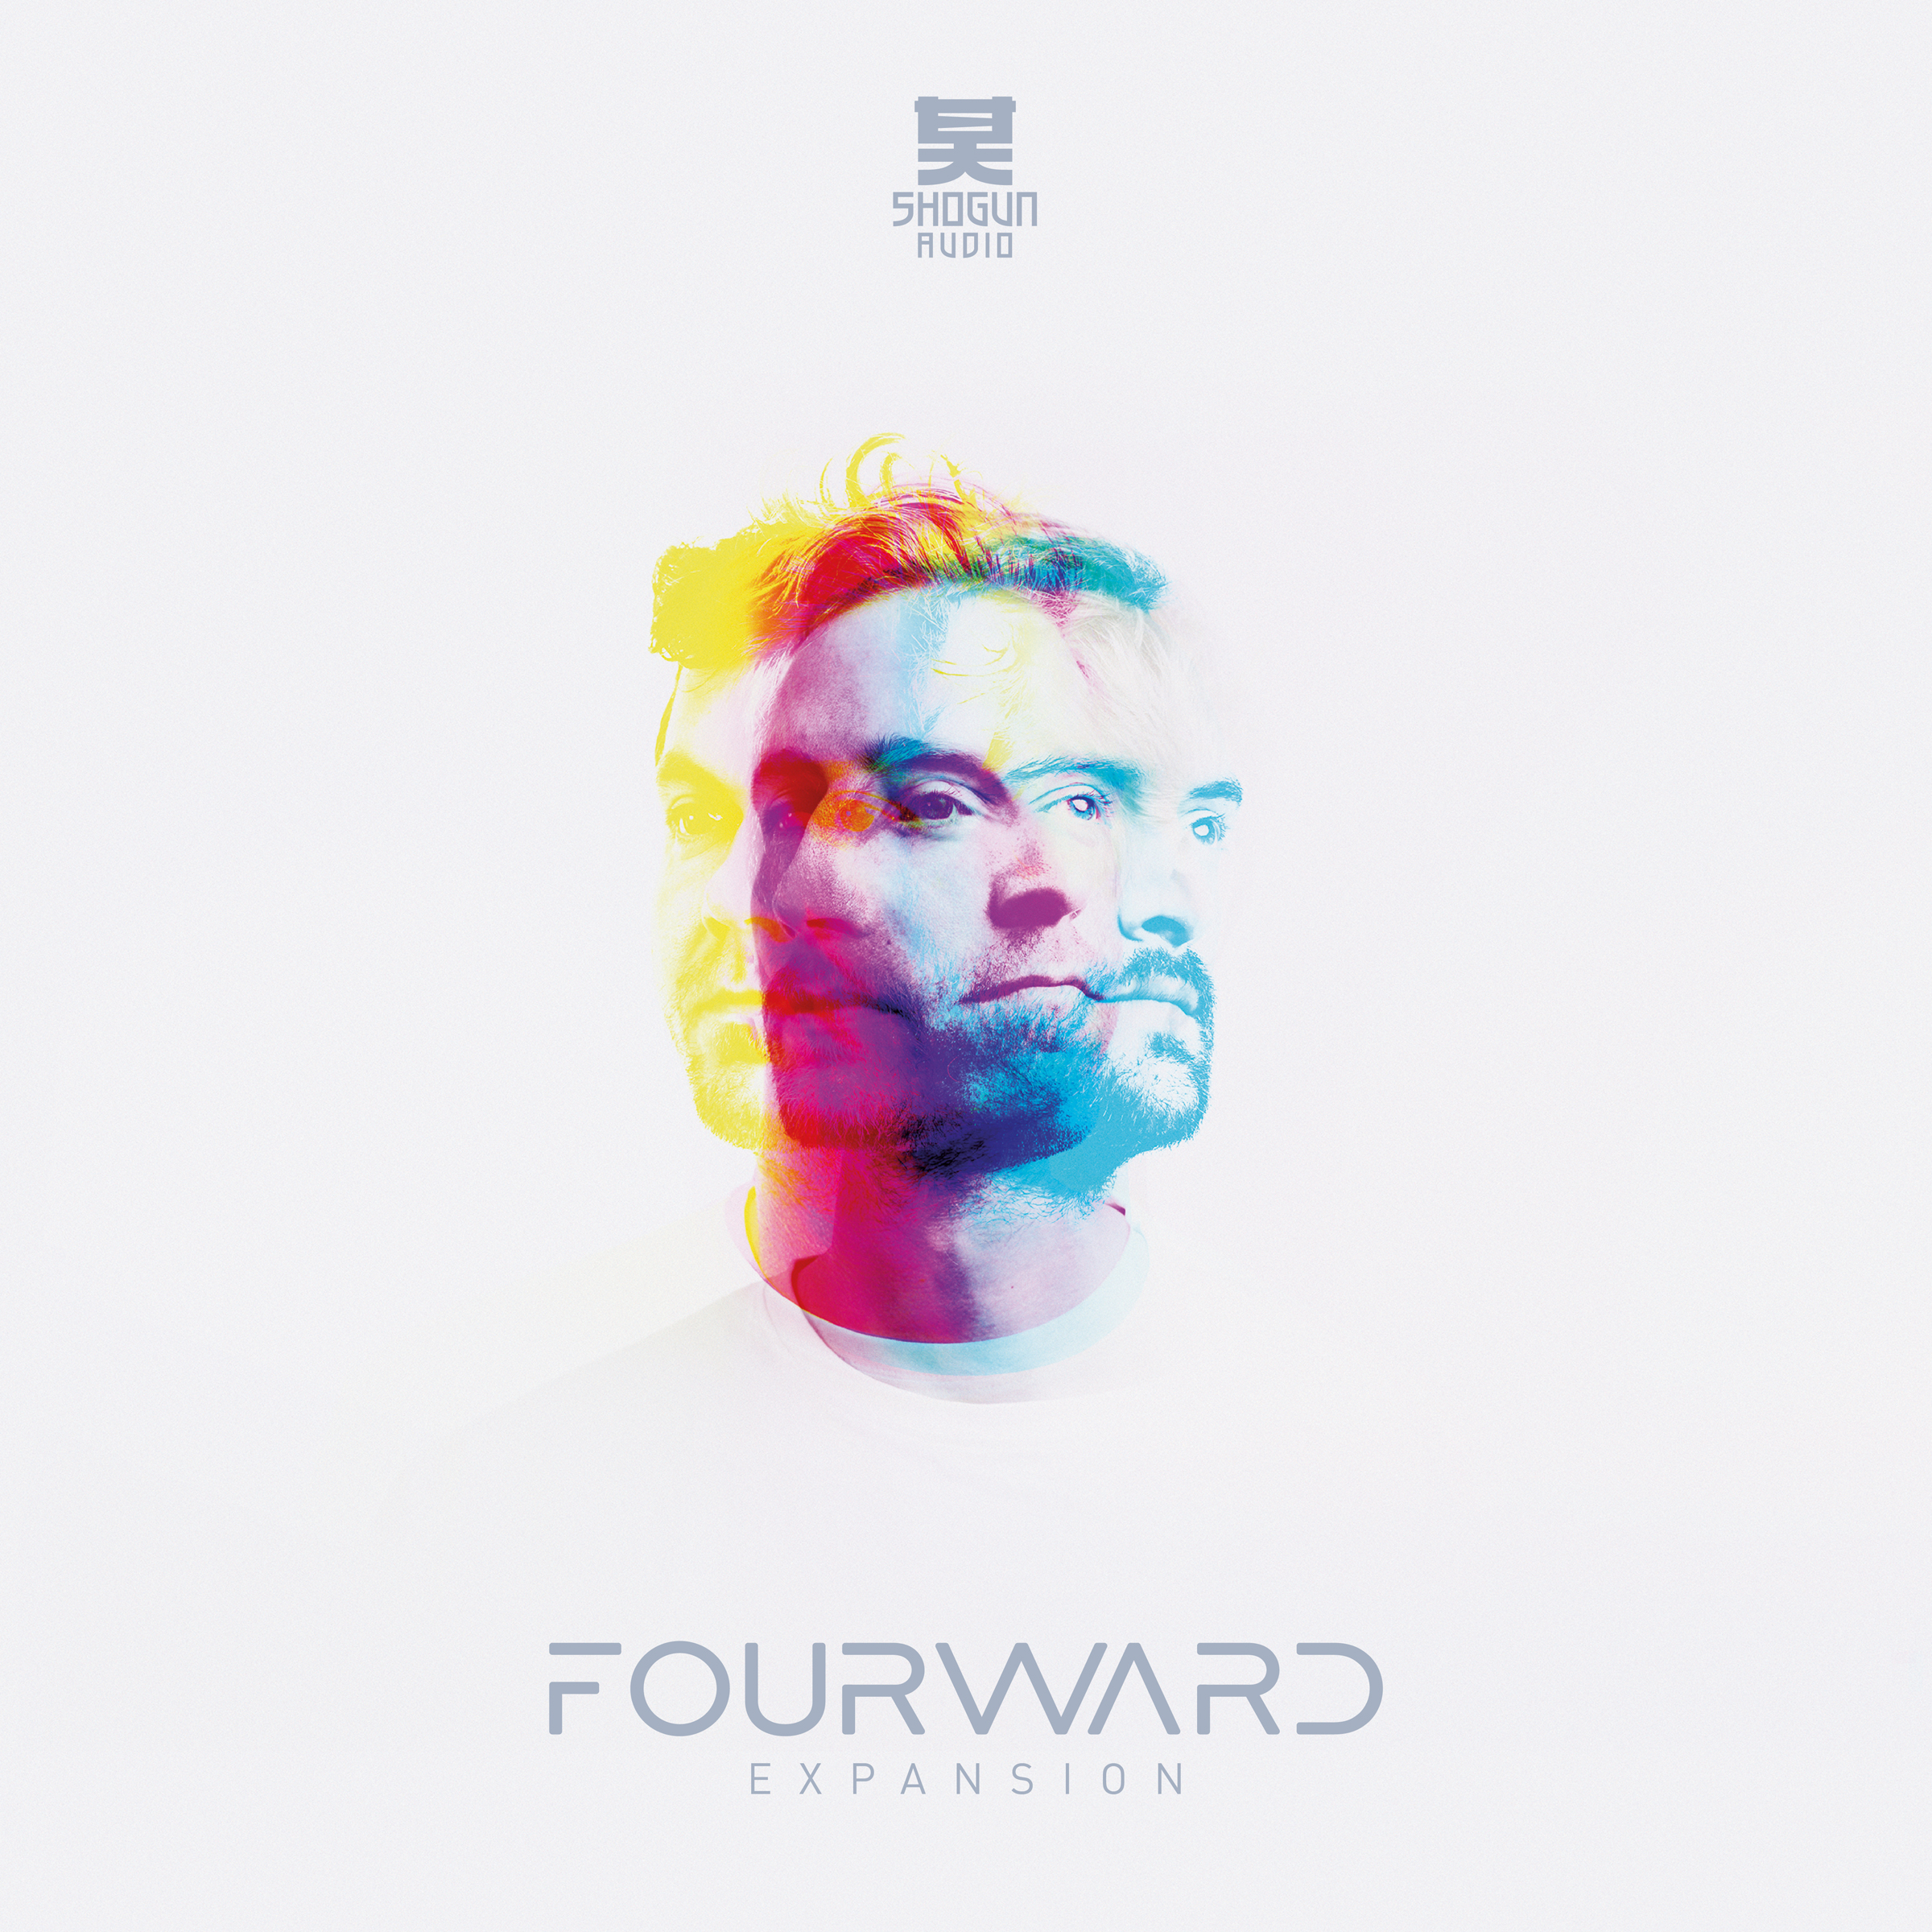 Fourward/EXPANSION CD